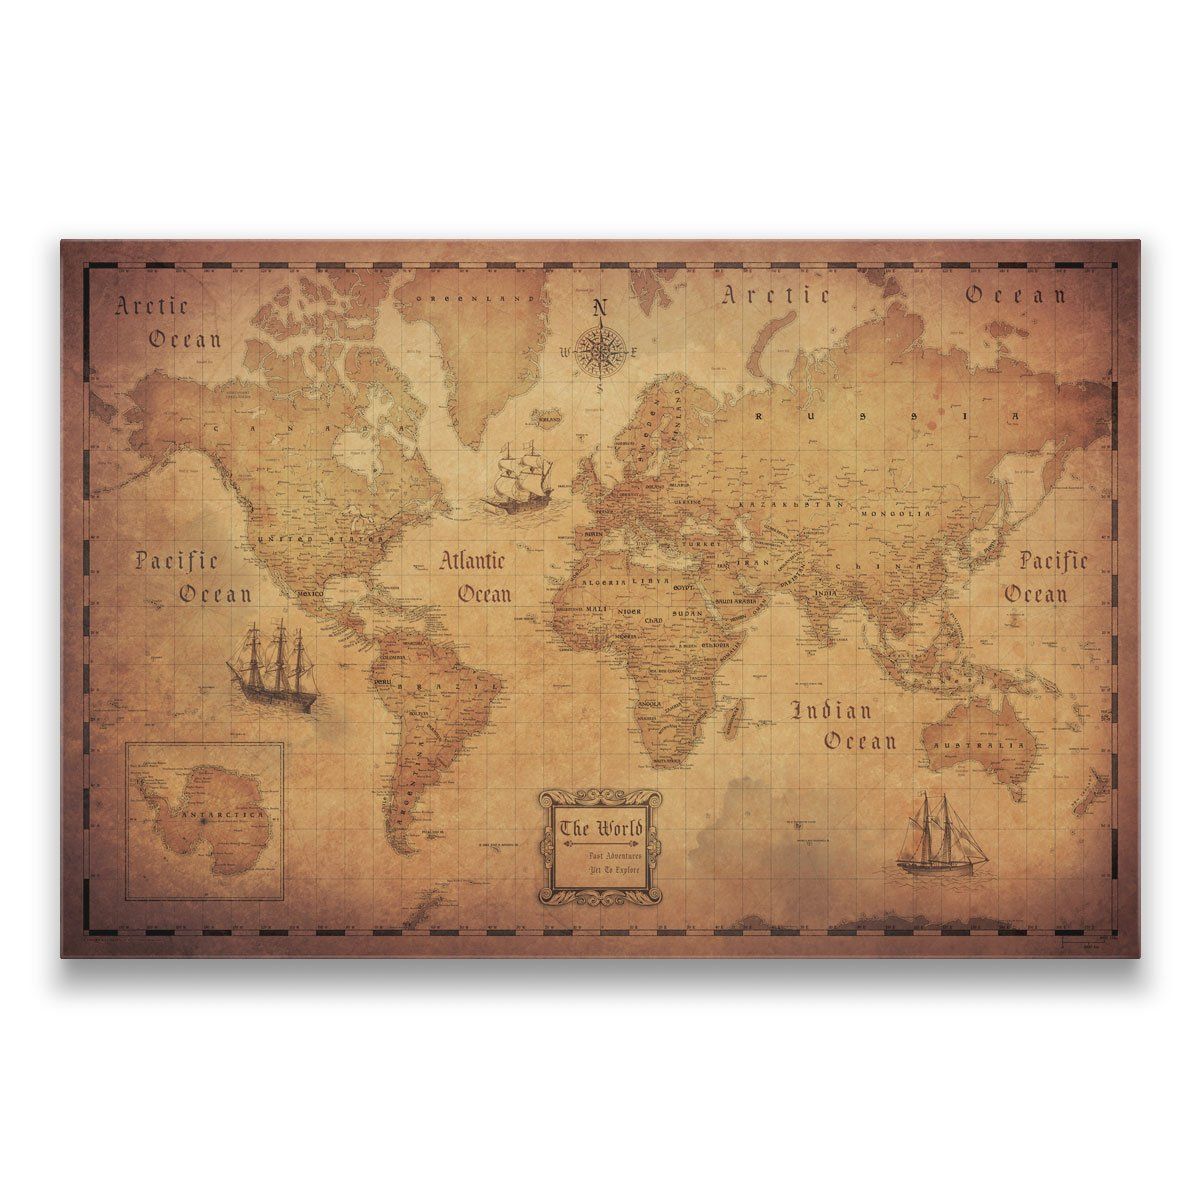 Map with Pins - World Travel Map - Conquest Maps. Golden Aged Style Push Pin Travel Map Cork Board, Track Your Travels Pinable Canvas Map with Cork Backing, Internal Framed (36 x 24 Inches)